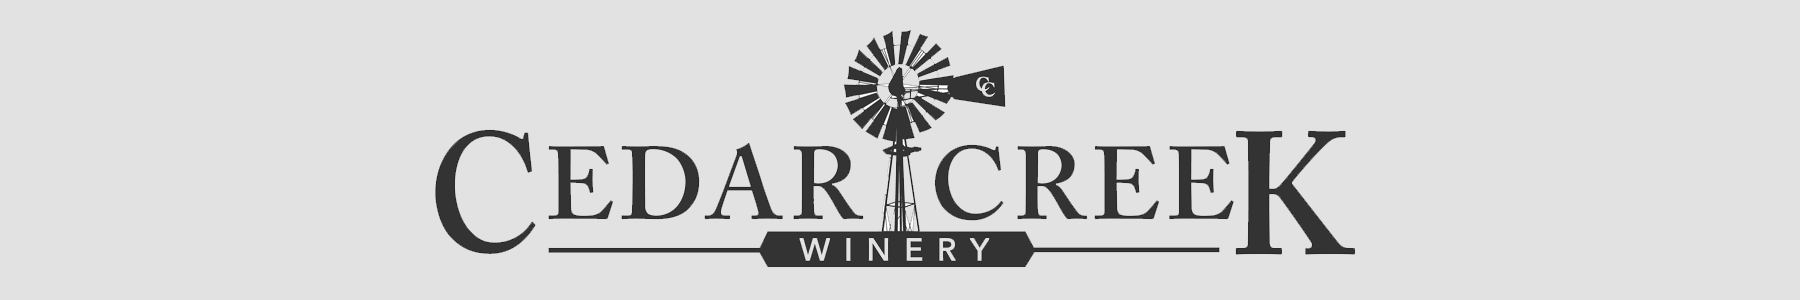 Cedar Creek Winery, Martinsville, IN 46151 Logo